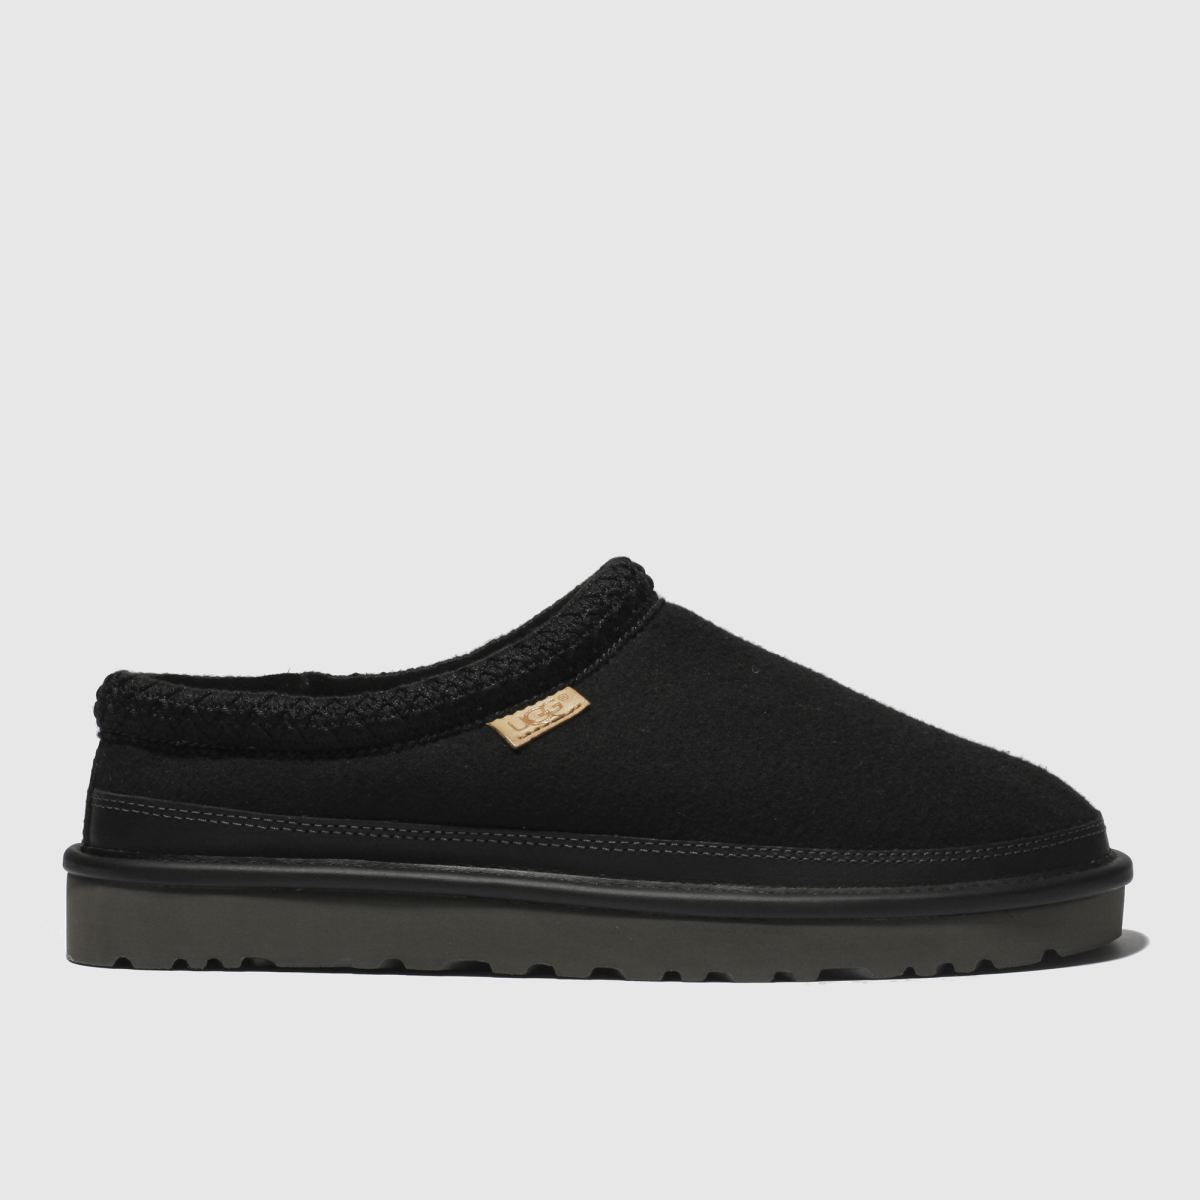 Ugg Black Tasman Slippers